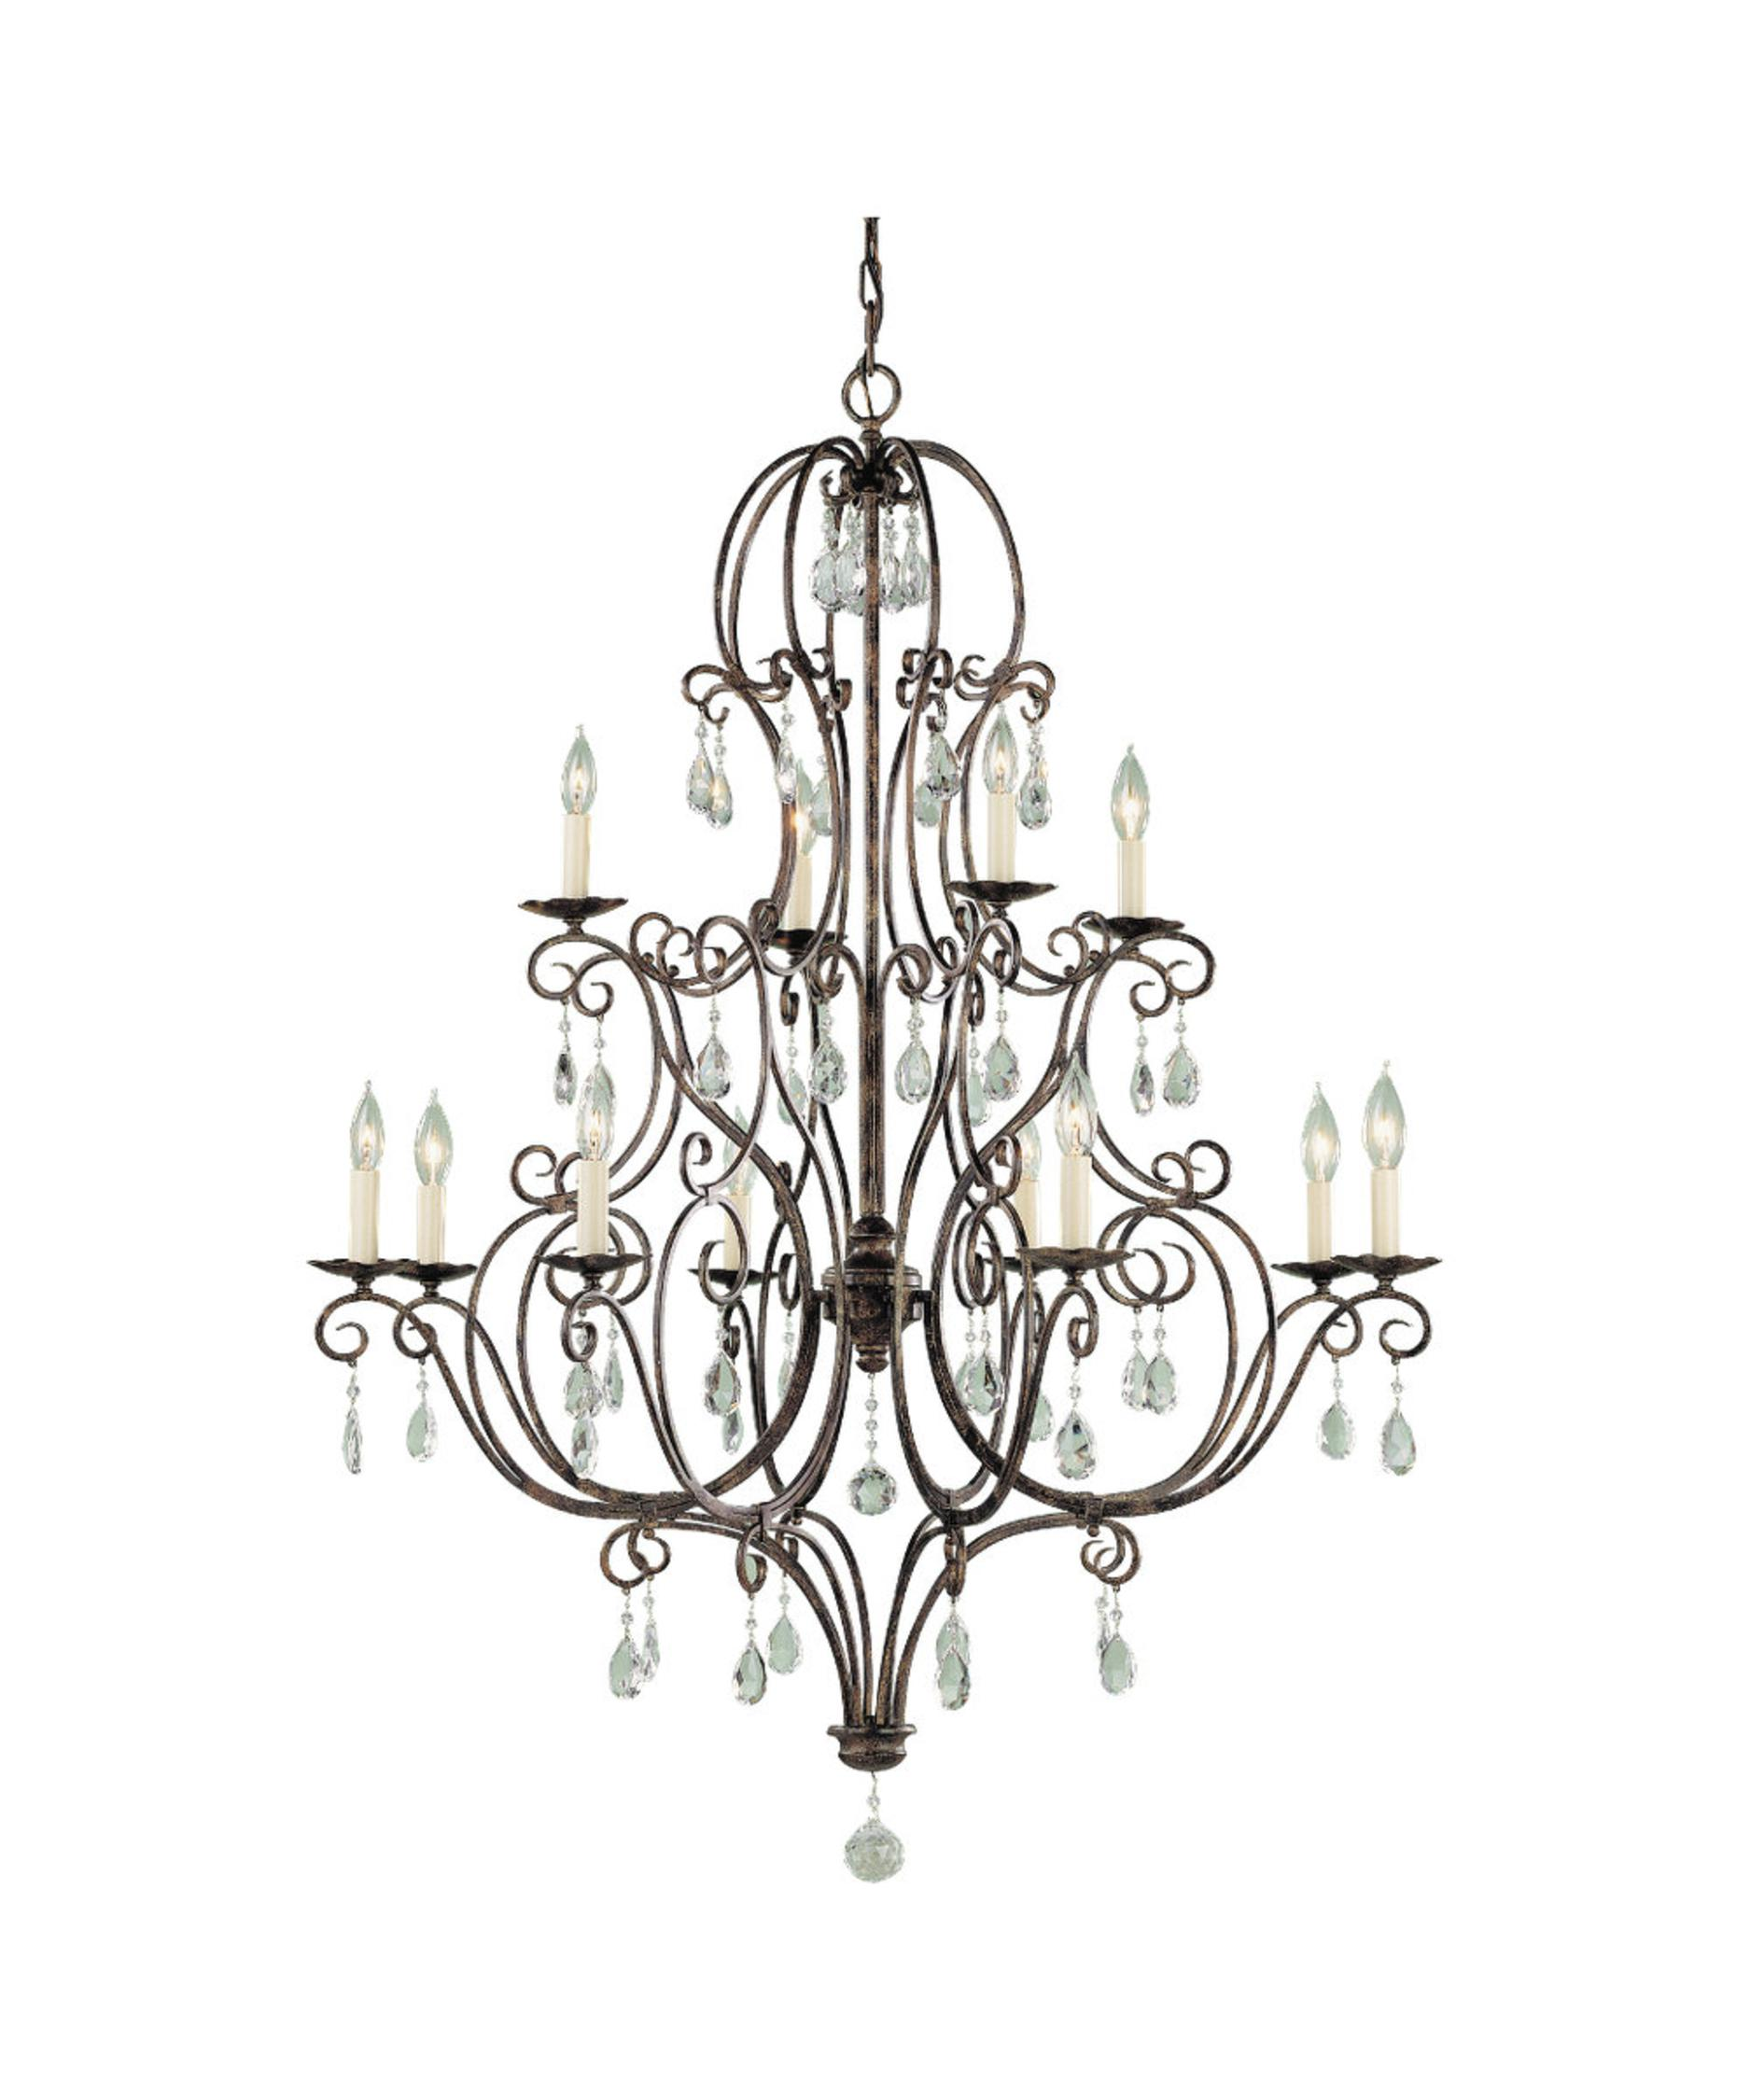 Murray Feiss Chateau 36 Inch Wide 12 Light Chandelier – Murray Feiss Chandeliers